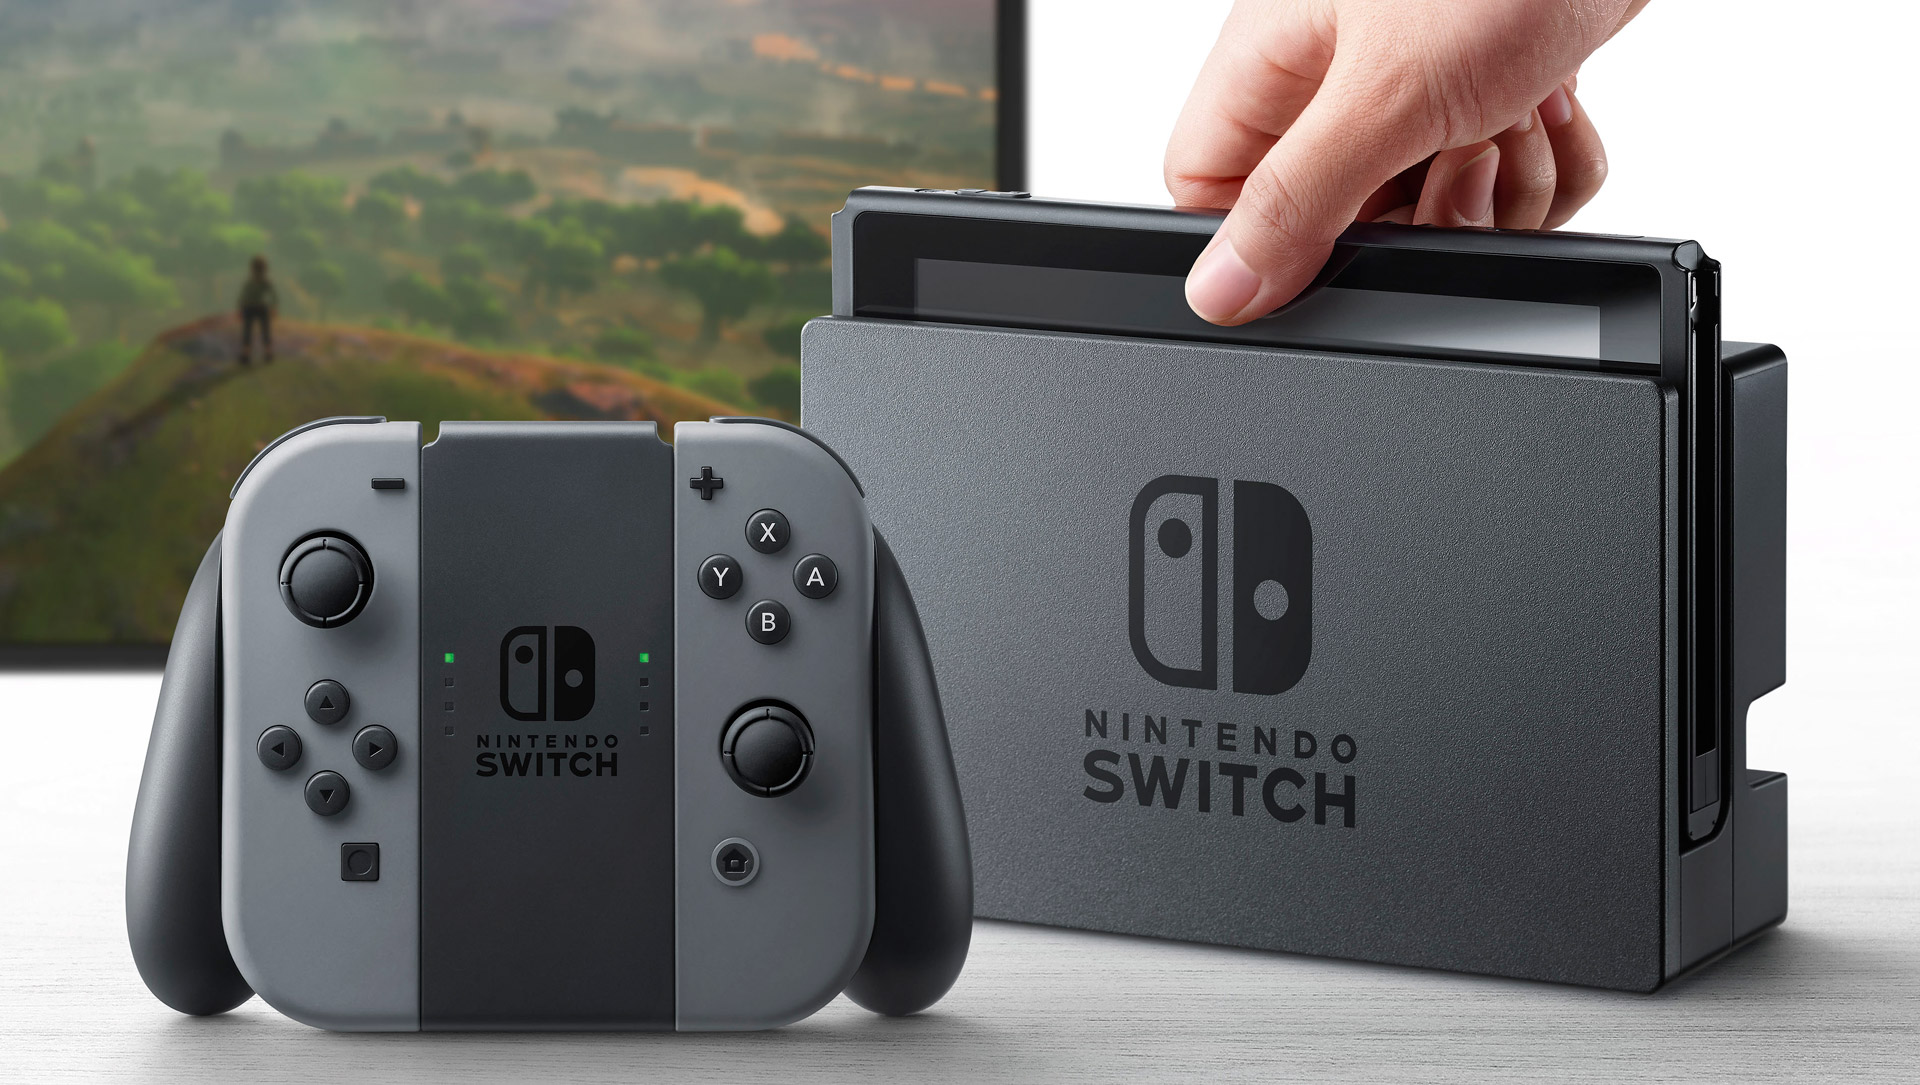 Nintendo Switch es fantástica y original, pero no perfecta